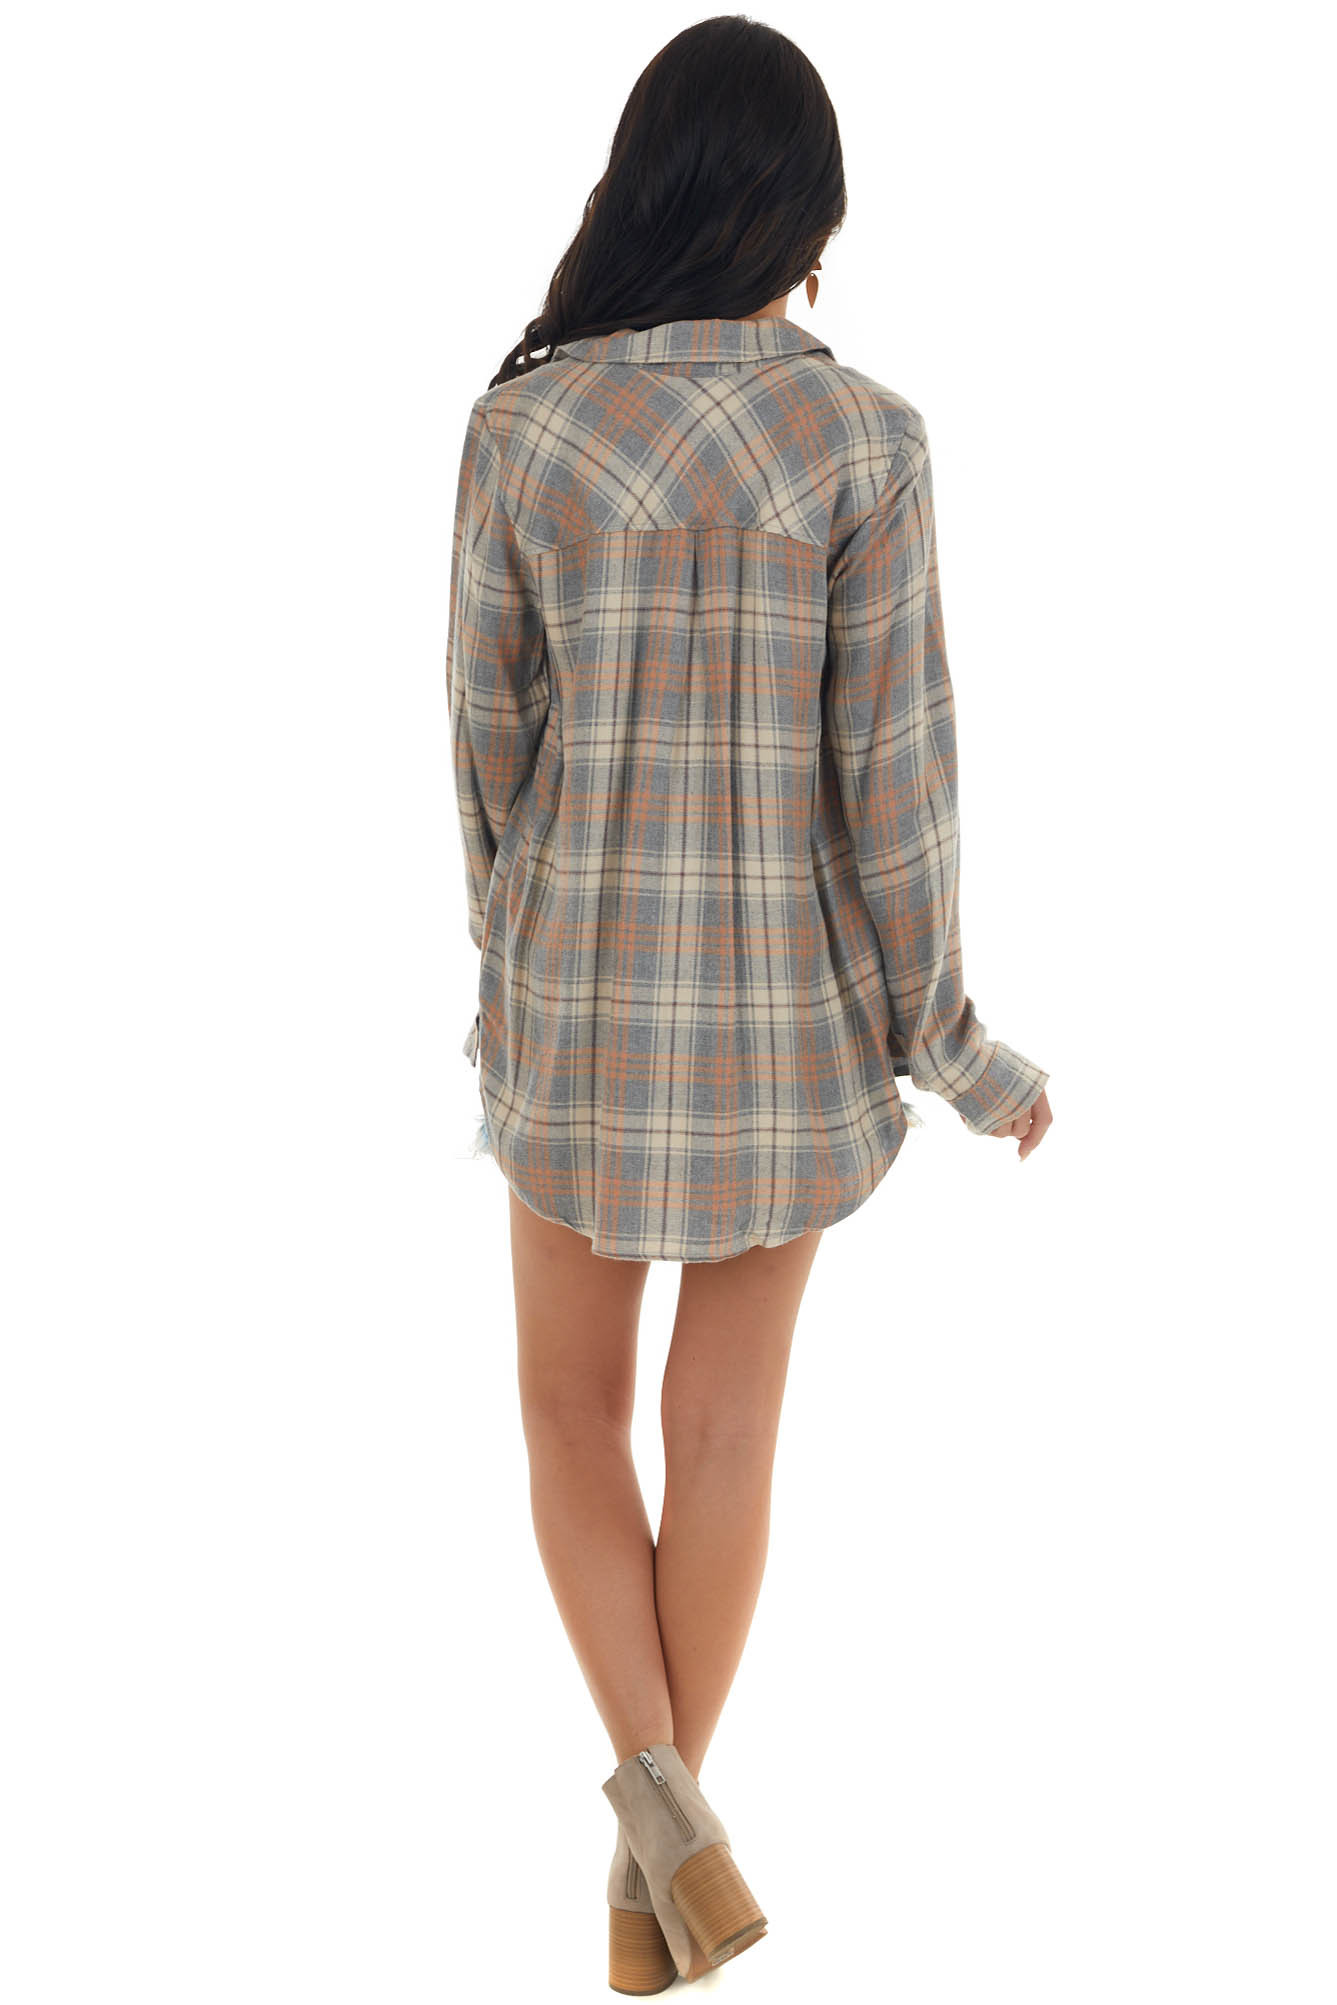 Steel Grey Plaid Button Up Top with Collar